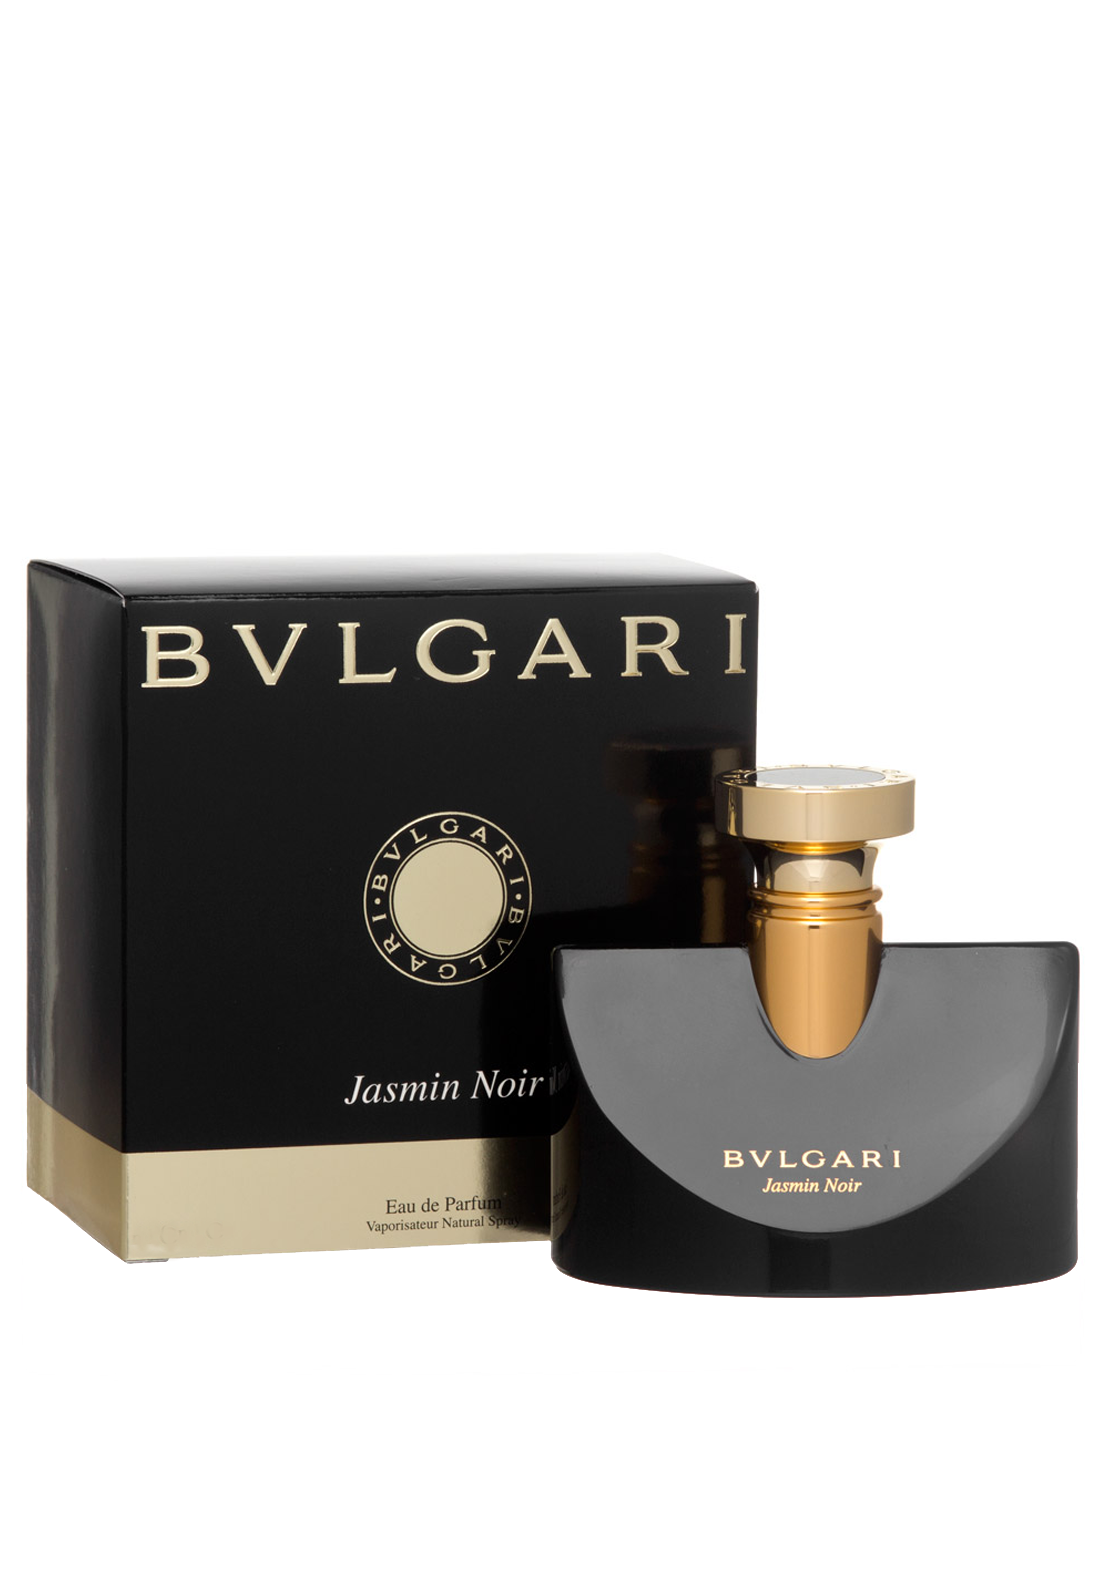 Bvlgari Jasmin Noir Eau De Parfum for Women, 50ml